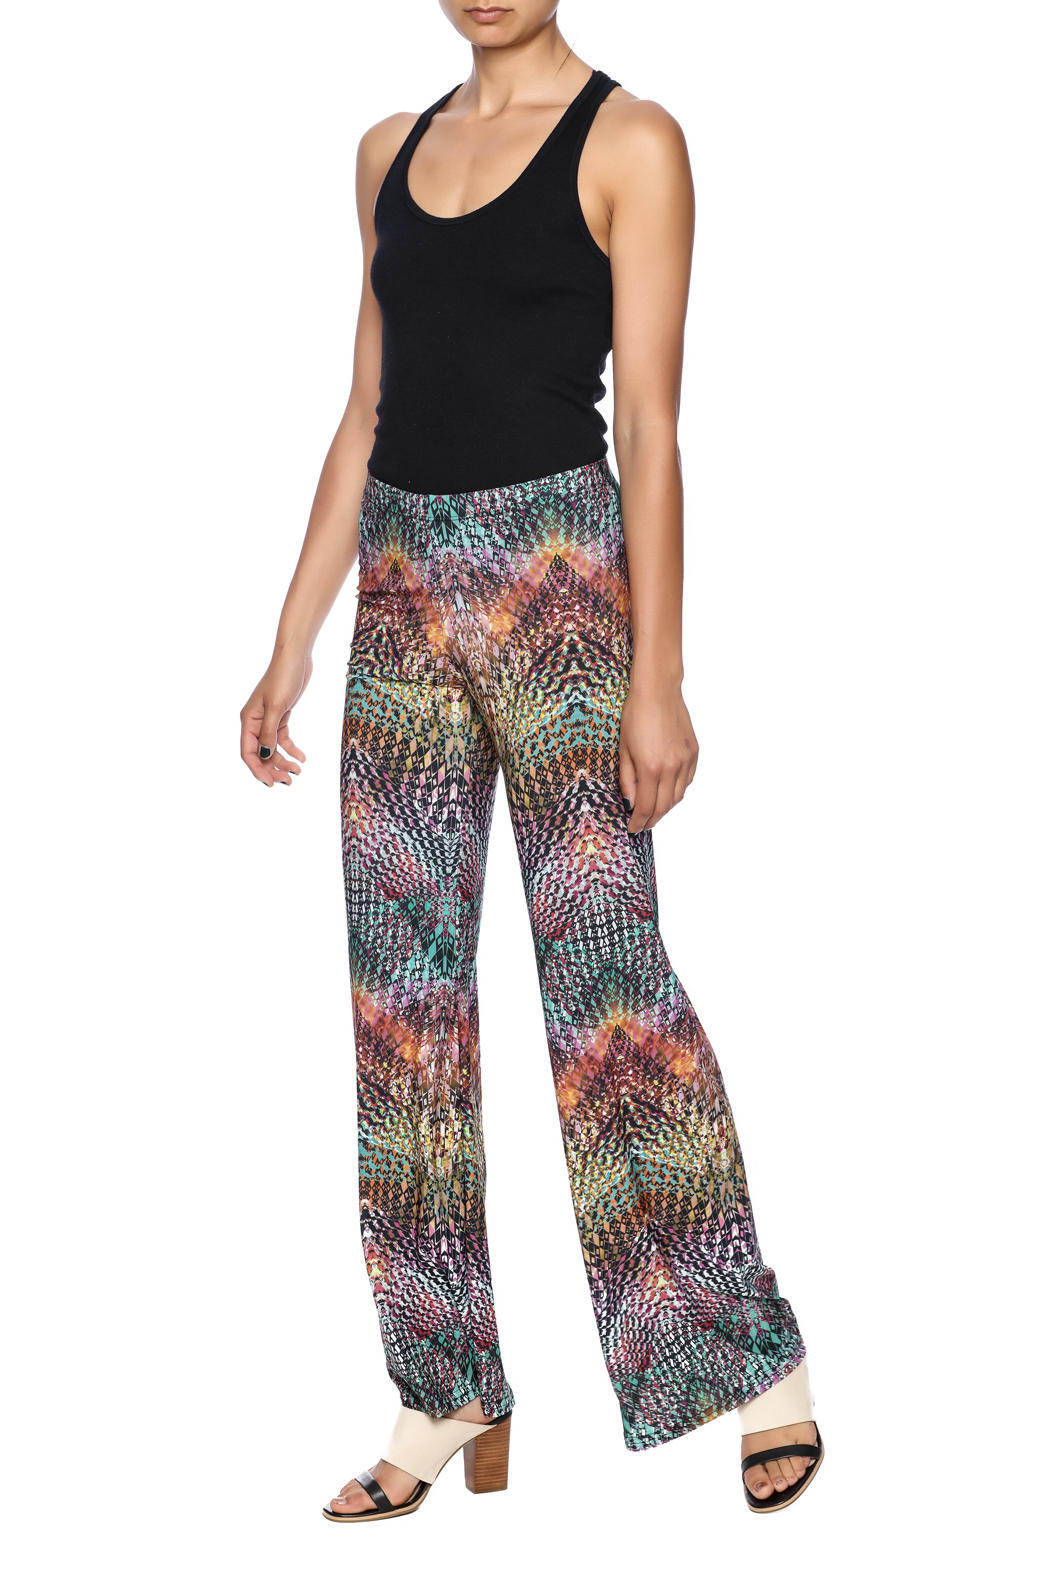 Viereck Serrano Bell-Bottoms - Front Full Image